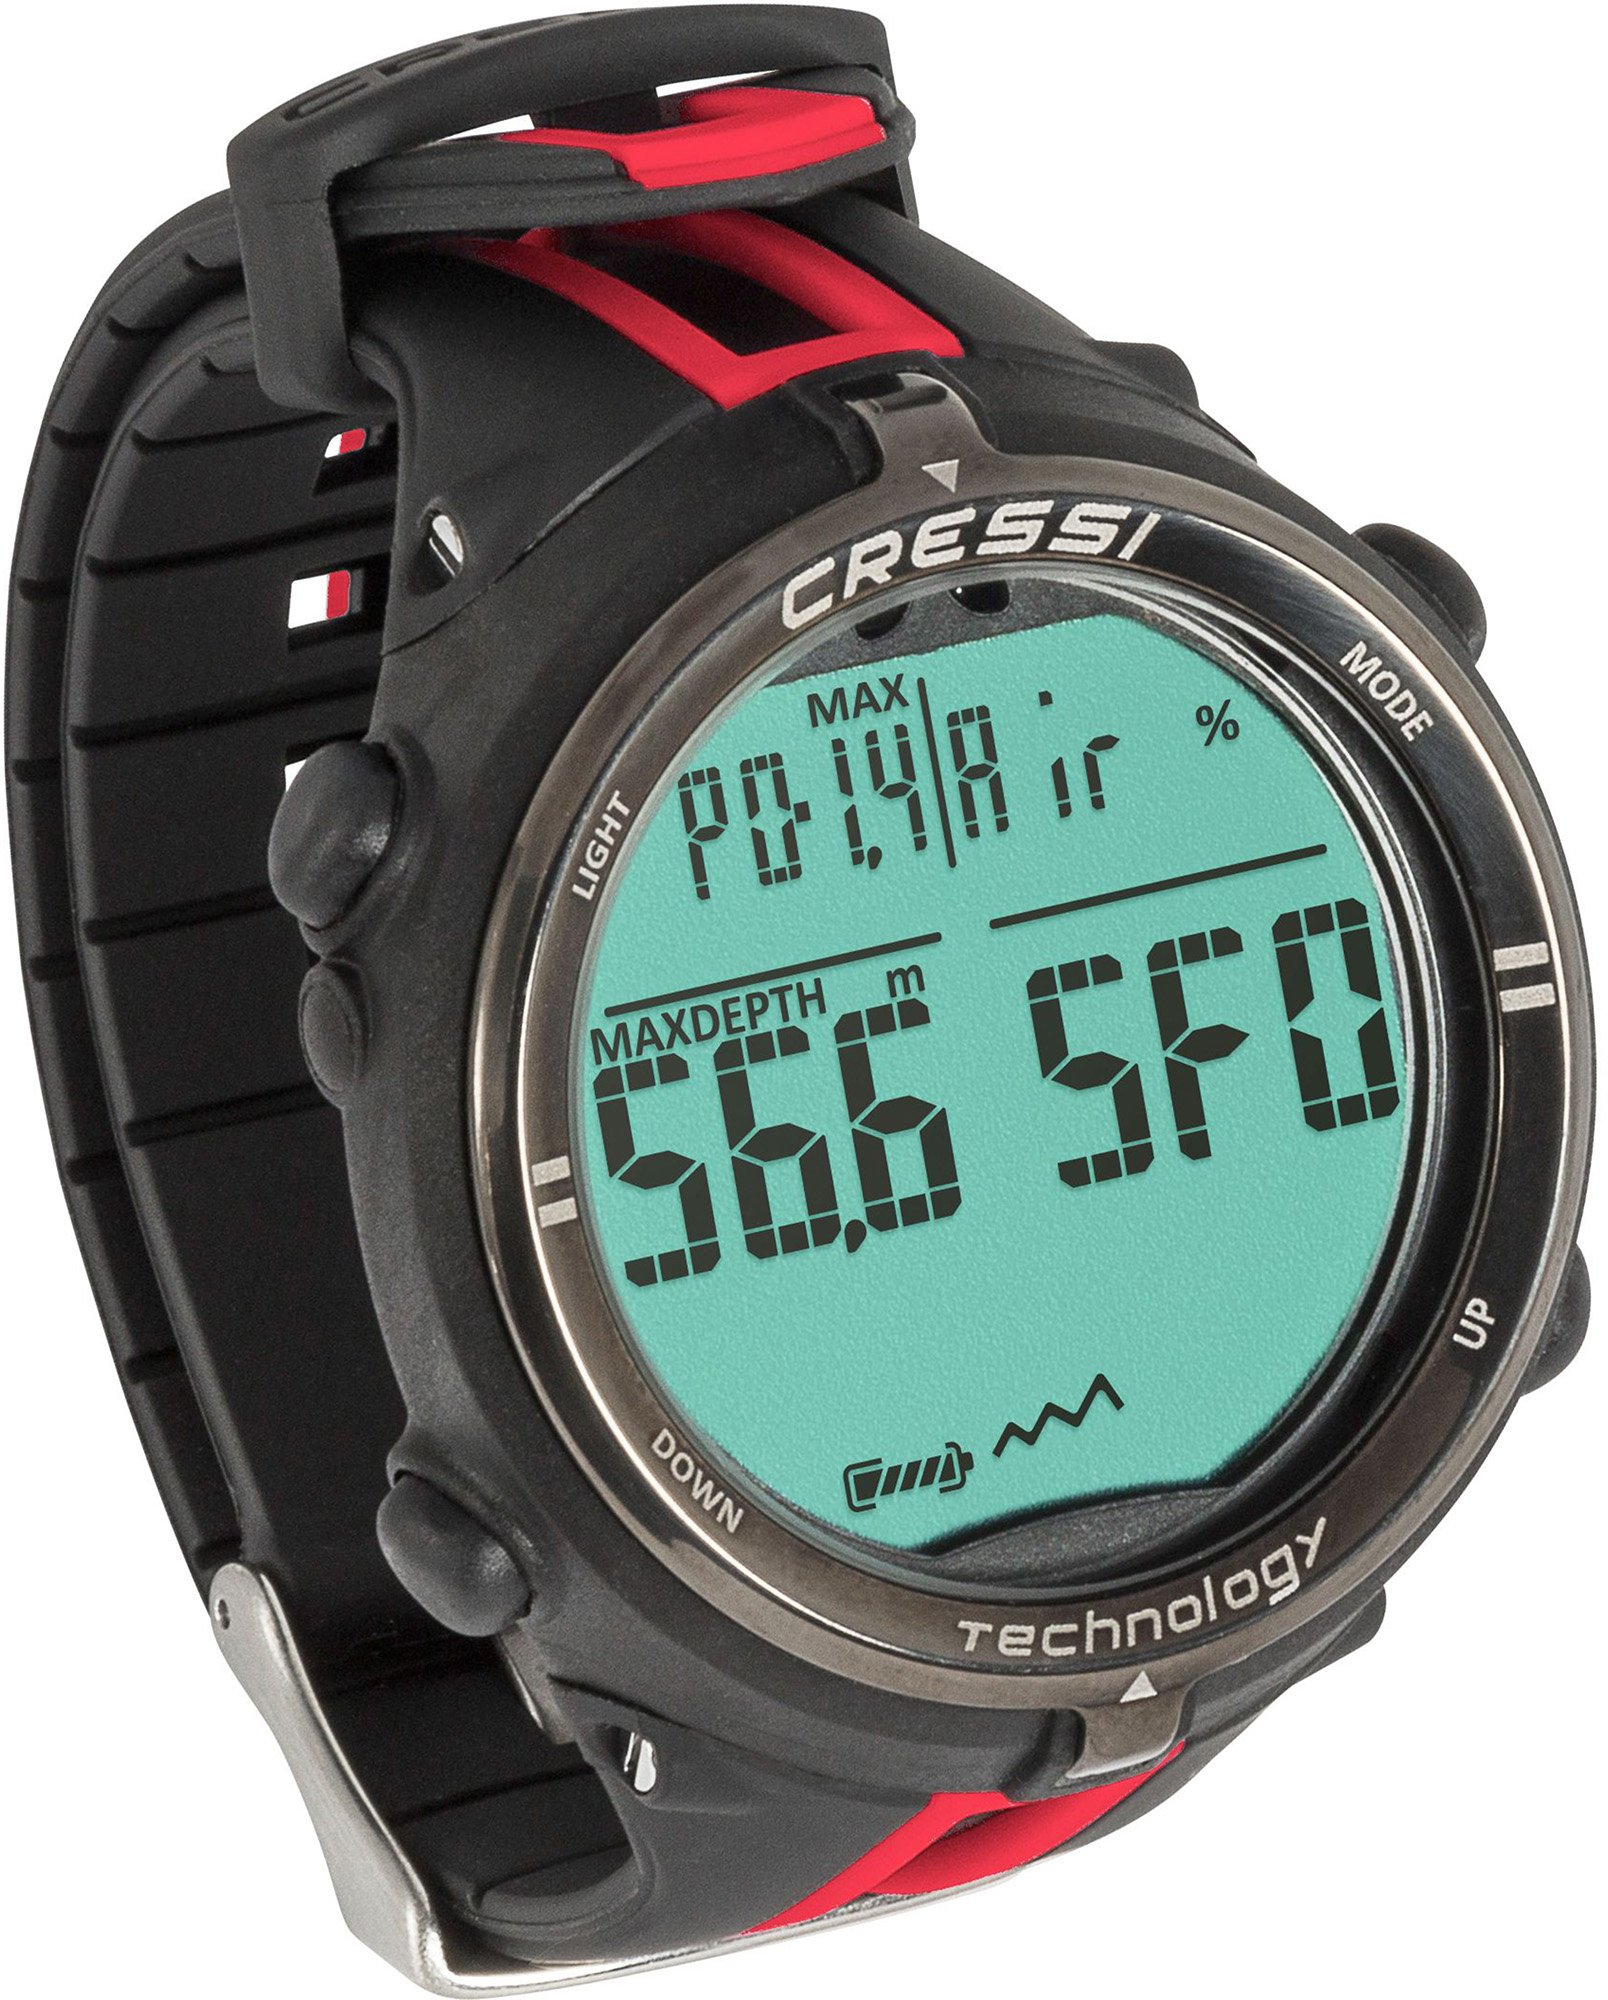 Cressi NEWTON TITANIUM Scuba Diving Computer Watch For Mixed Gas and Dives Log | Made in Italy by Cressi: Quality Since 1946 (Black/Red)